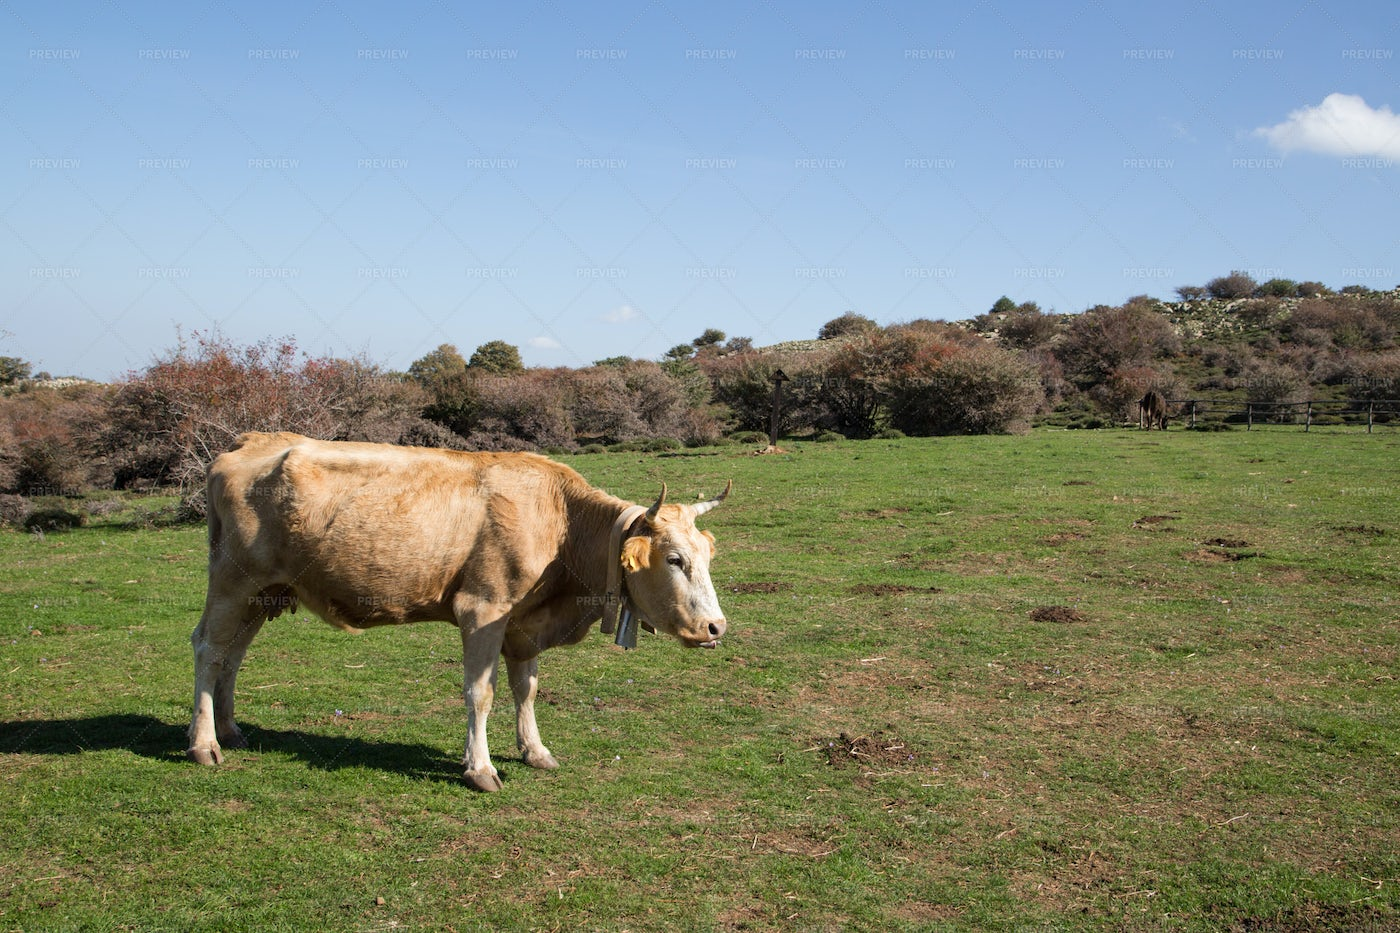 Cow Grazing On The Grass: Stock Photos